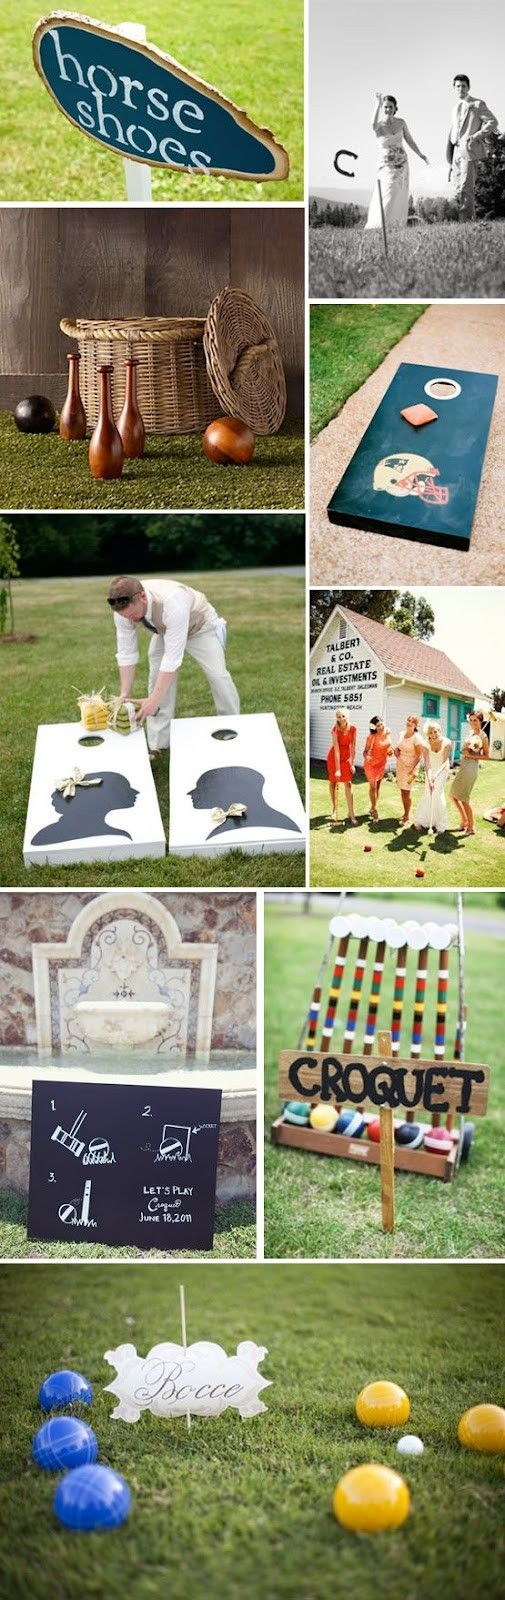 Wedding Lawn Games plus other great ideas                                                                                                                                                                                 More                                                                                                                                                                                 More